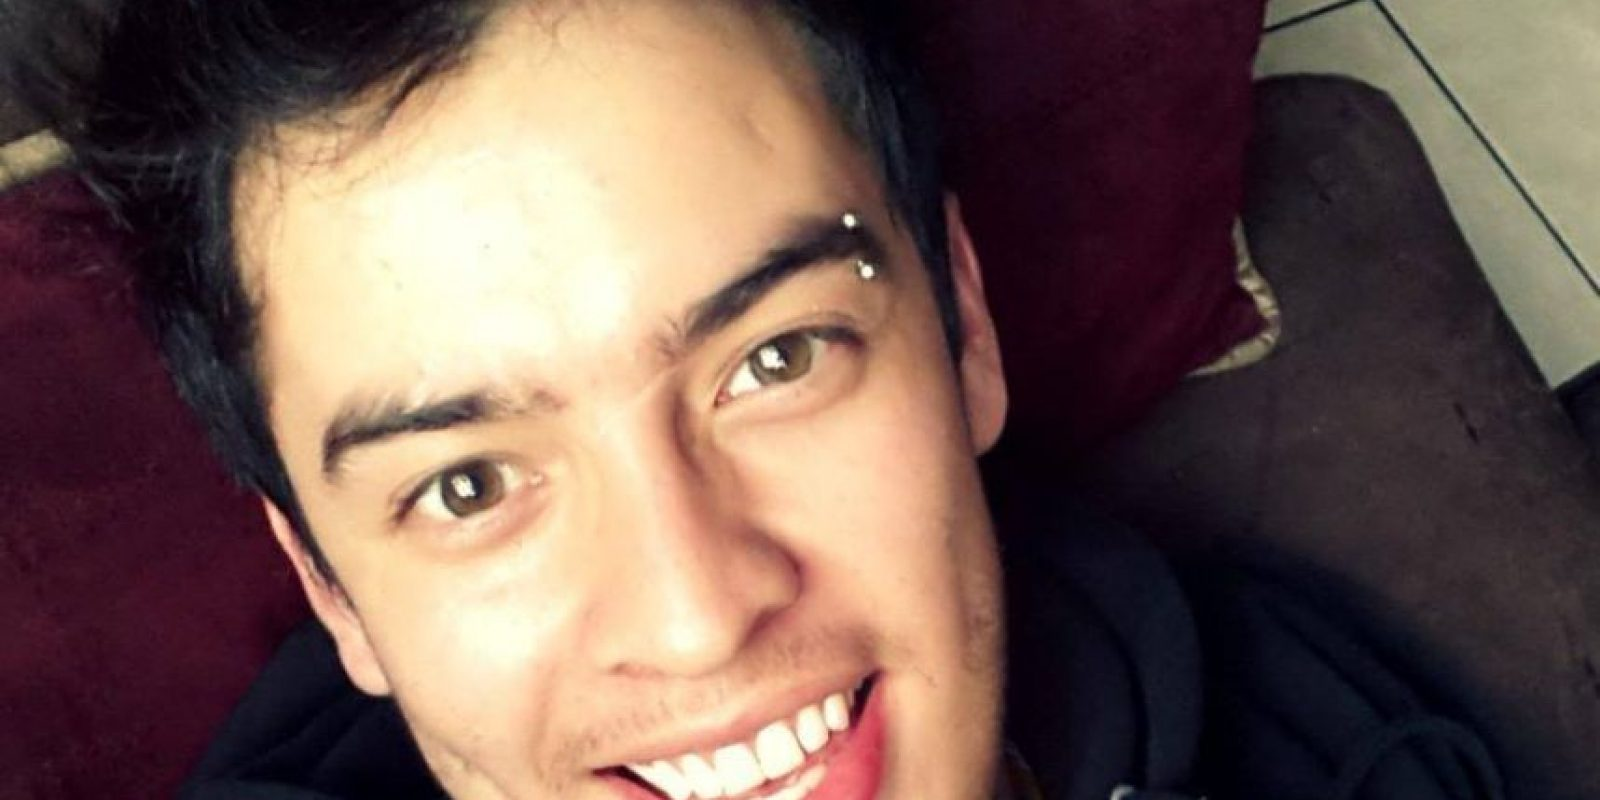 Diego Chuy, Mister Guatemala 2014 Foto:Facebook